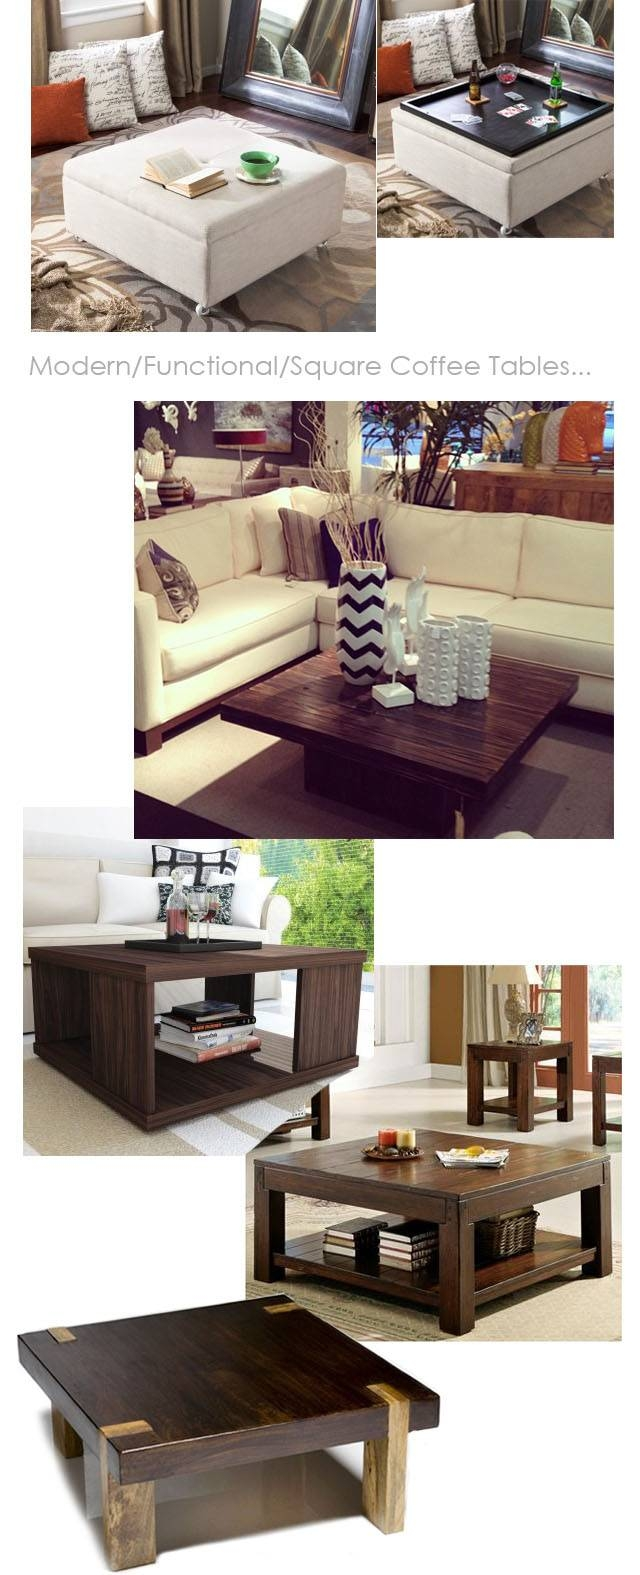 Our New Sectional Sofa & Coffee Table Decisions… | Love Maegan pertaining to Coffee Table For Sectional Sofa (Image 26 of 30)